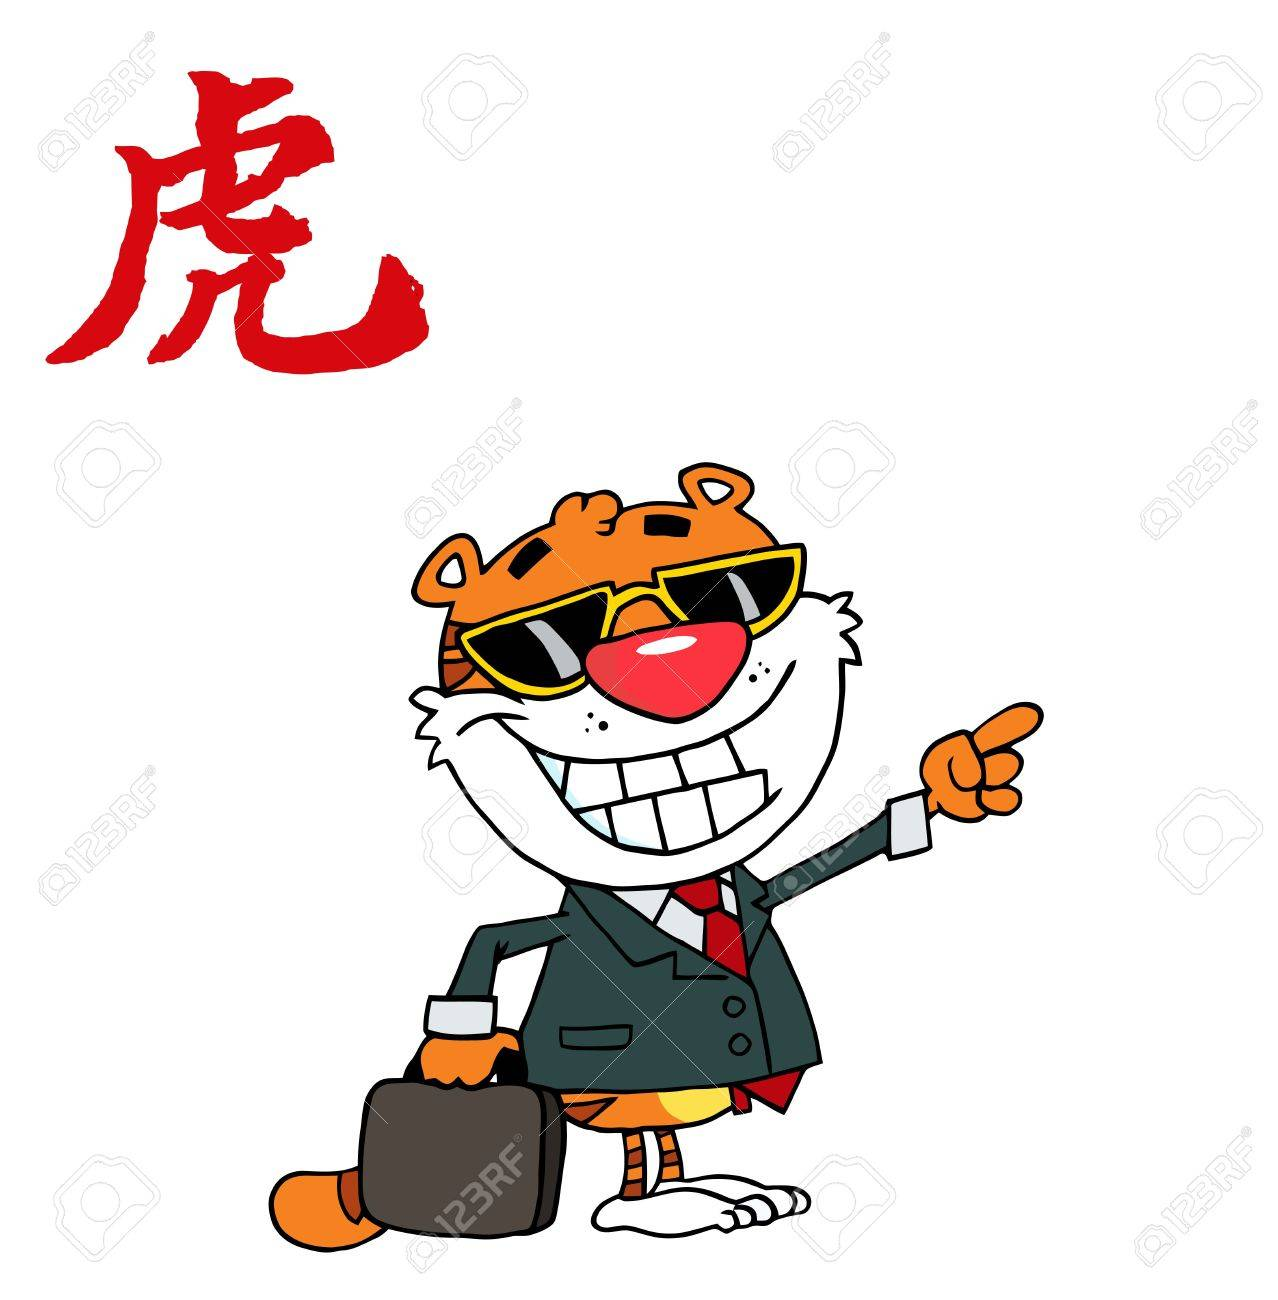 Tiger Pointing With A Year Of The Tiger Chinese Symbol Royalty Free